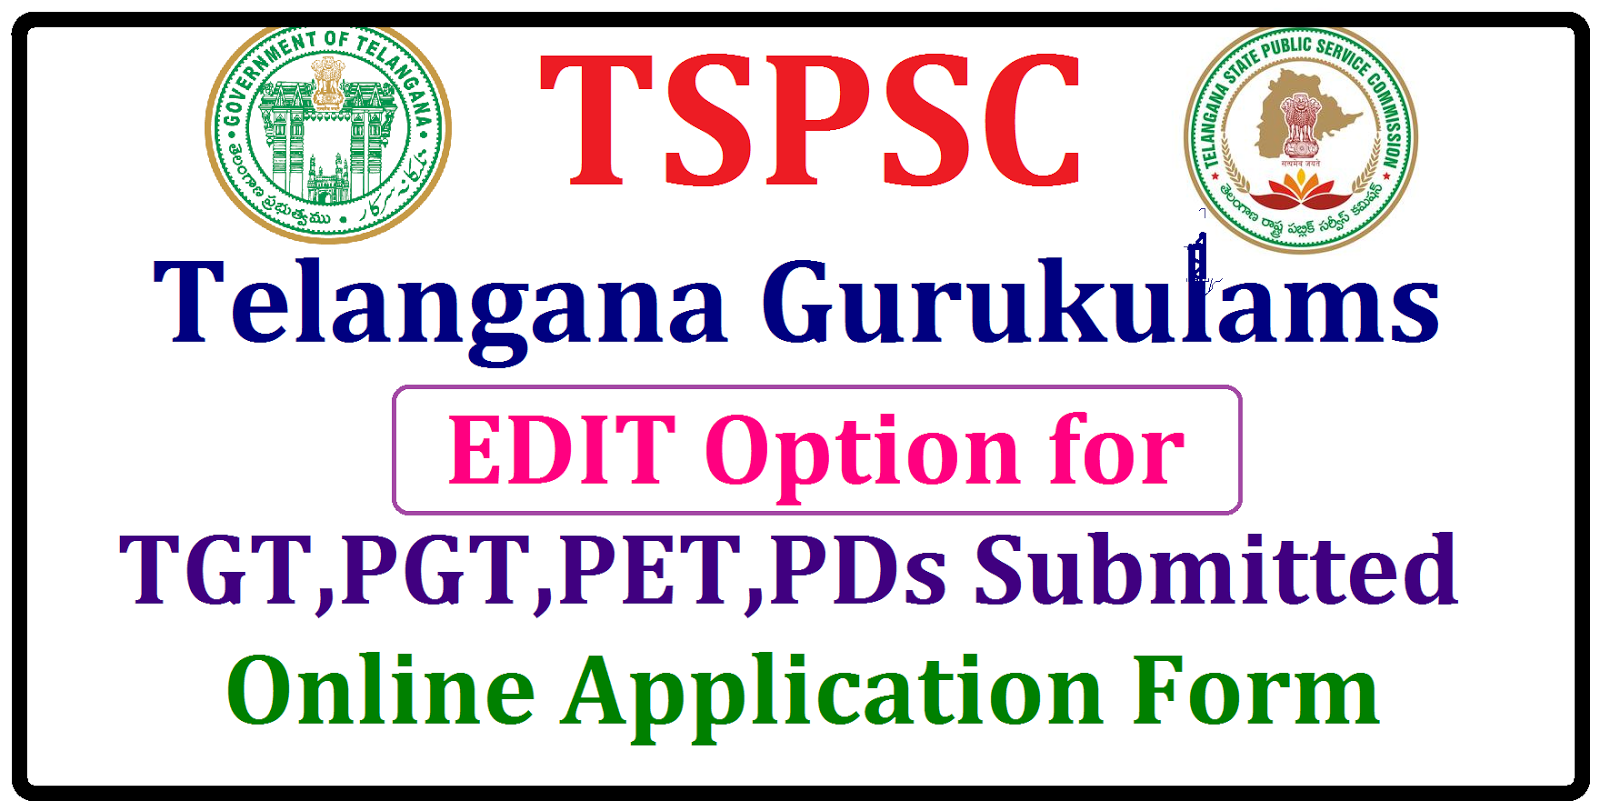 Tspsc gurukulam edit option